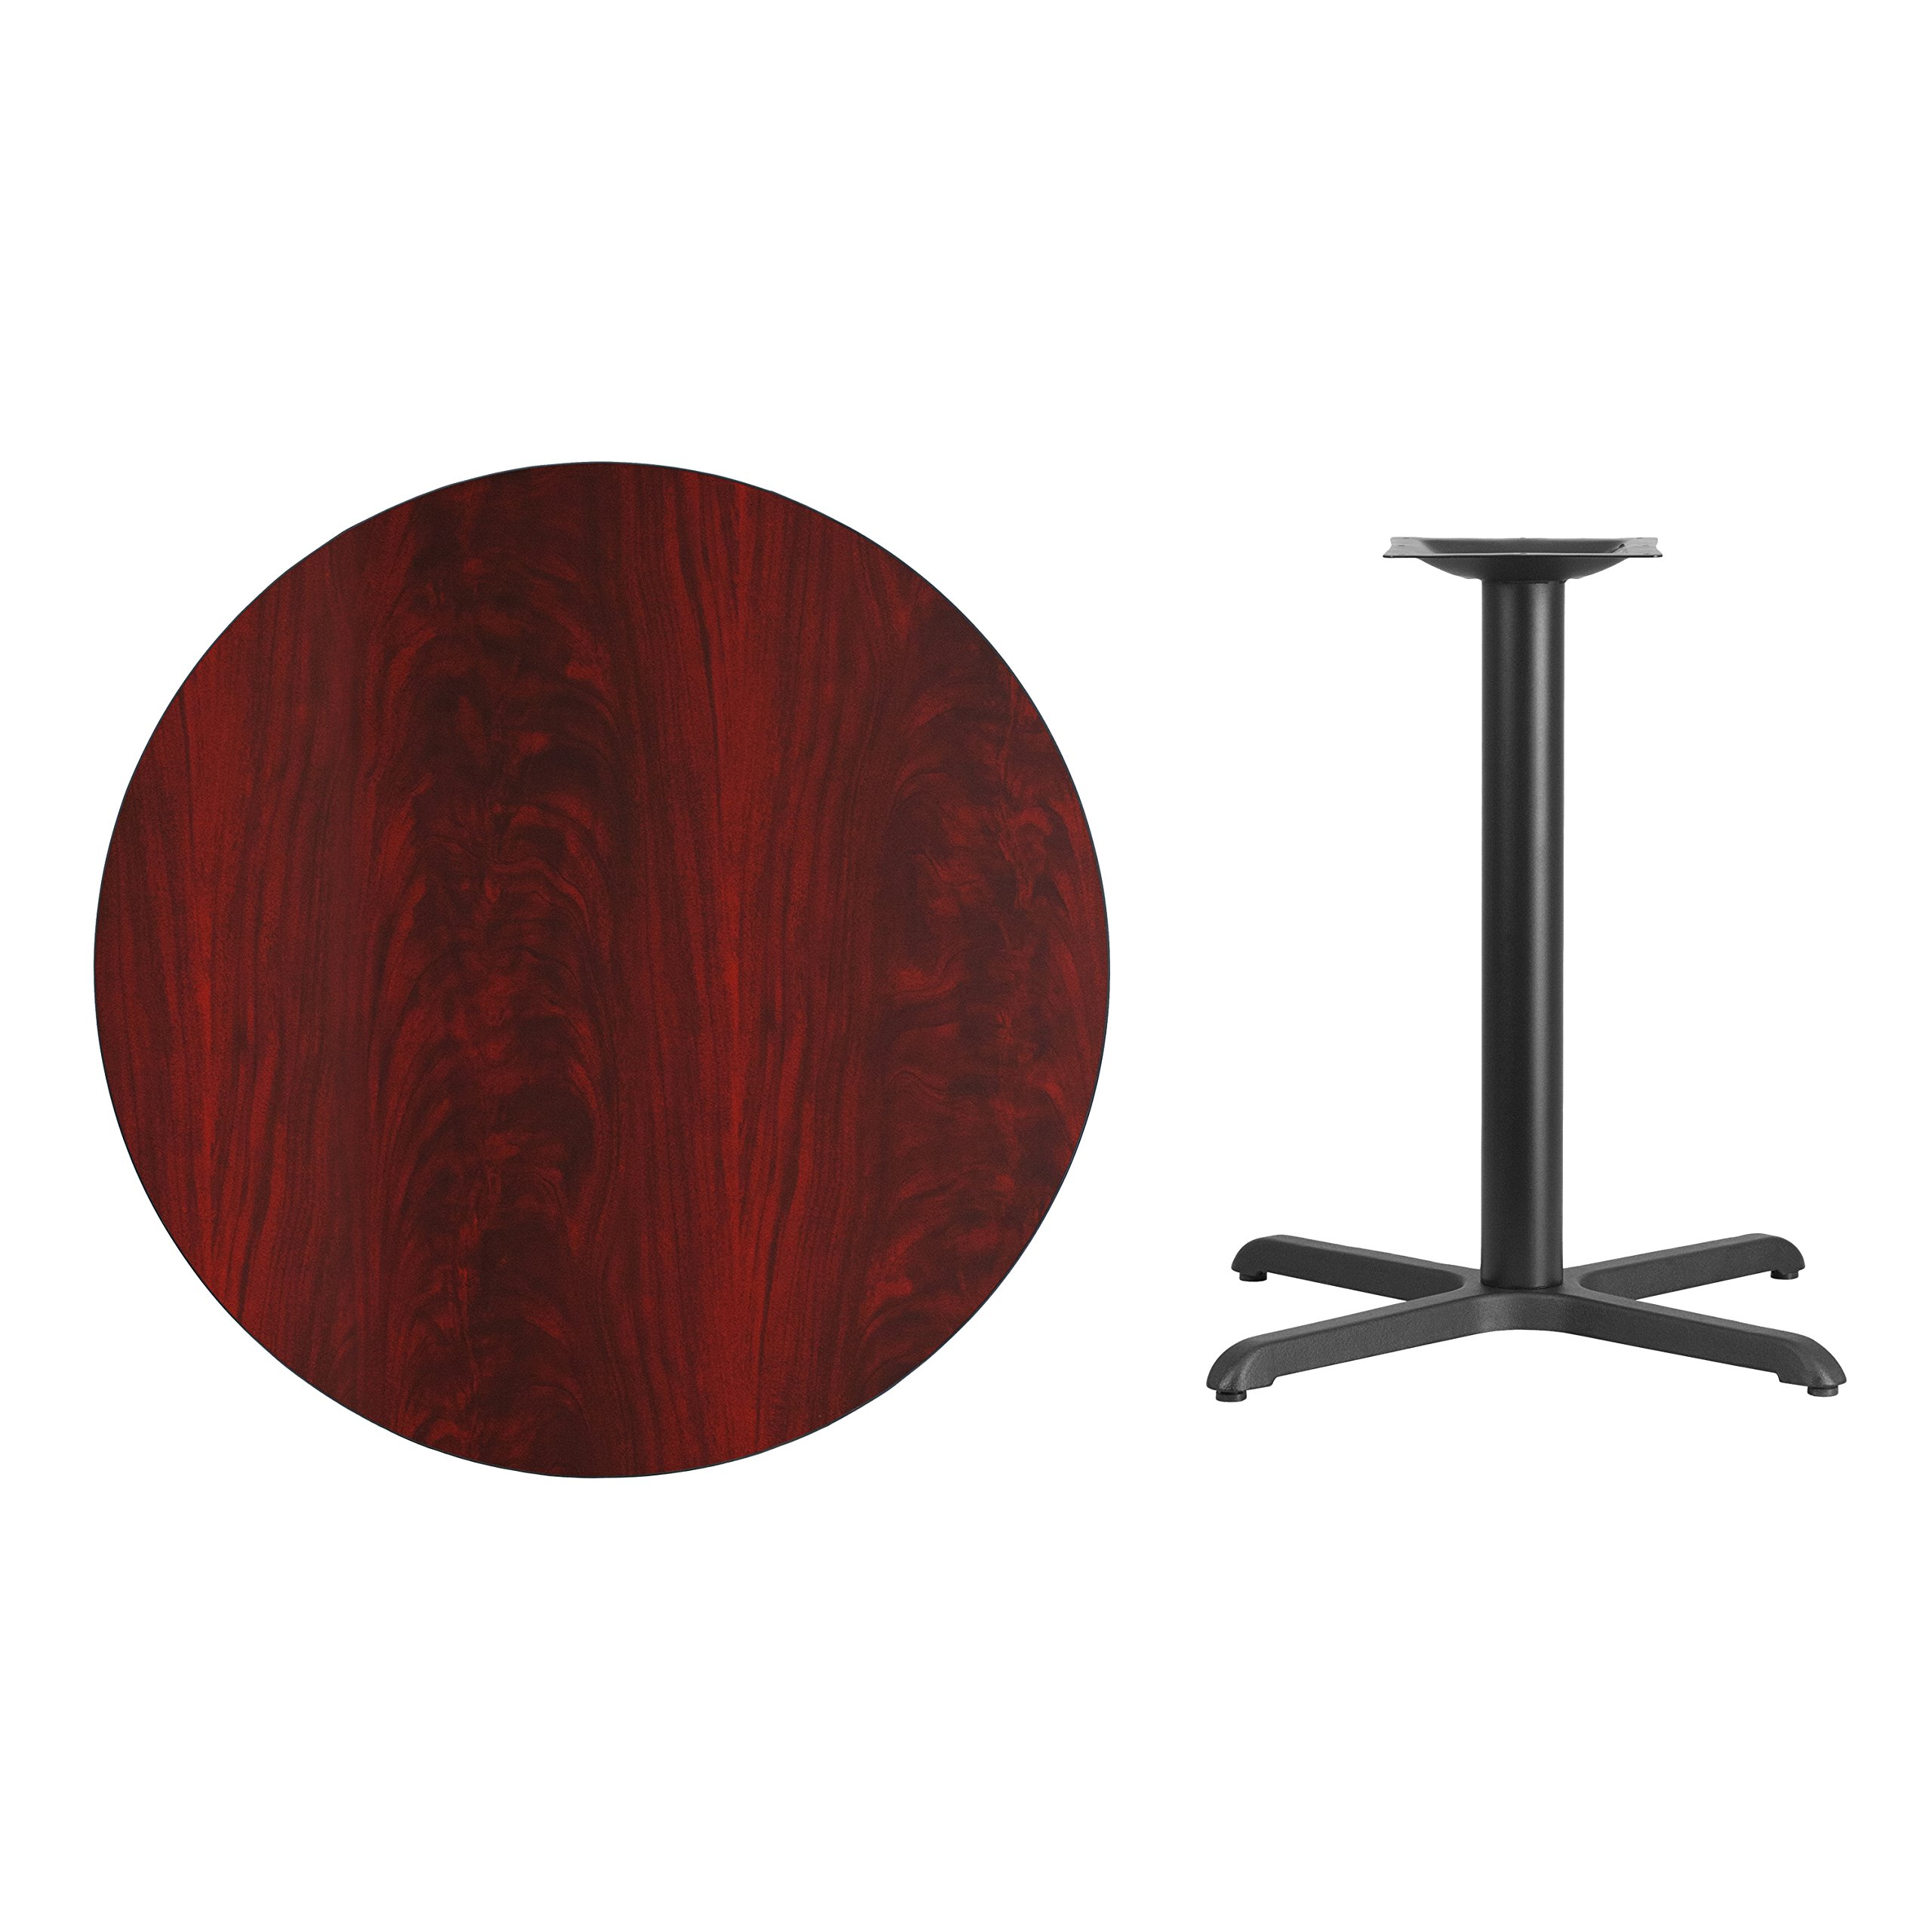 36'' Round Mahogany Laminate Table Top with 30'' x 30'' Table Height Base by Flash Furniture (Image #1)